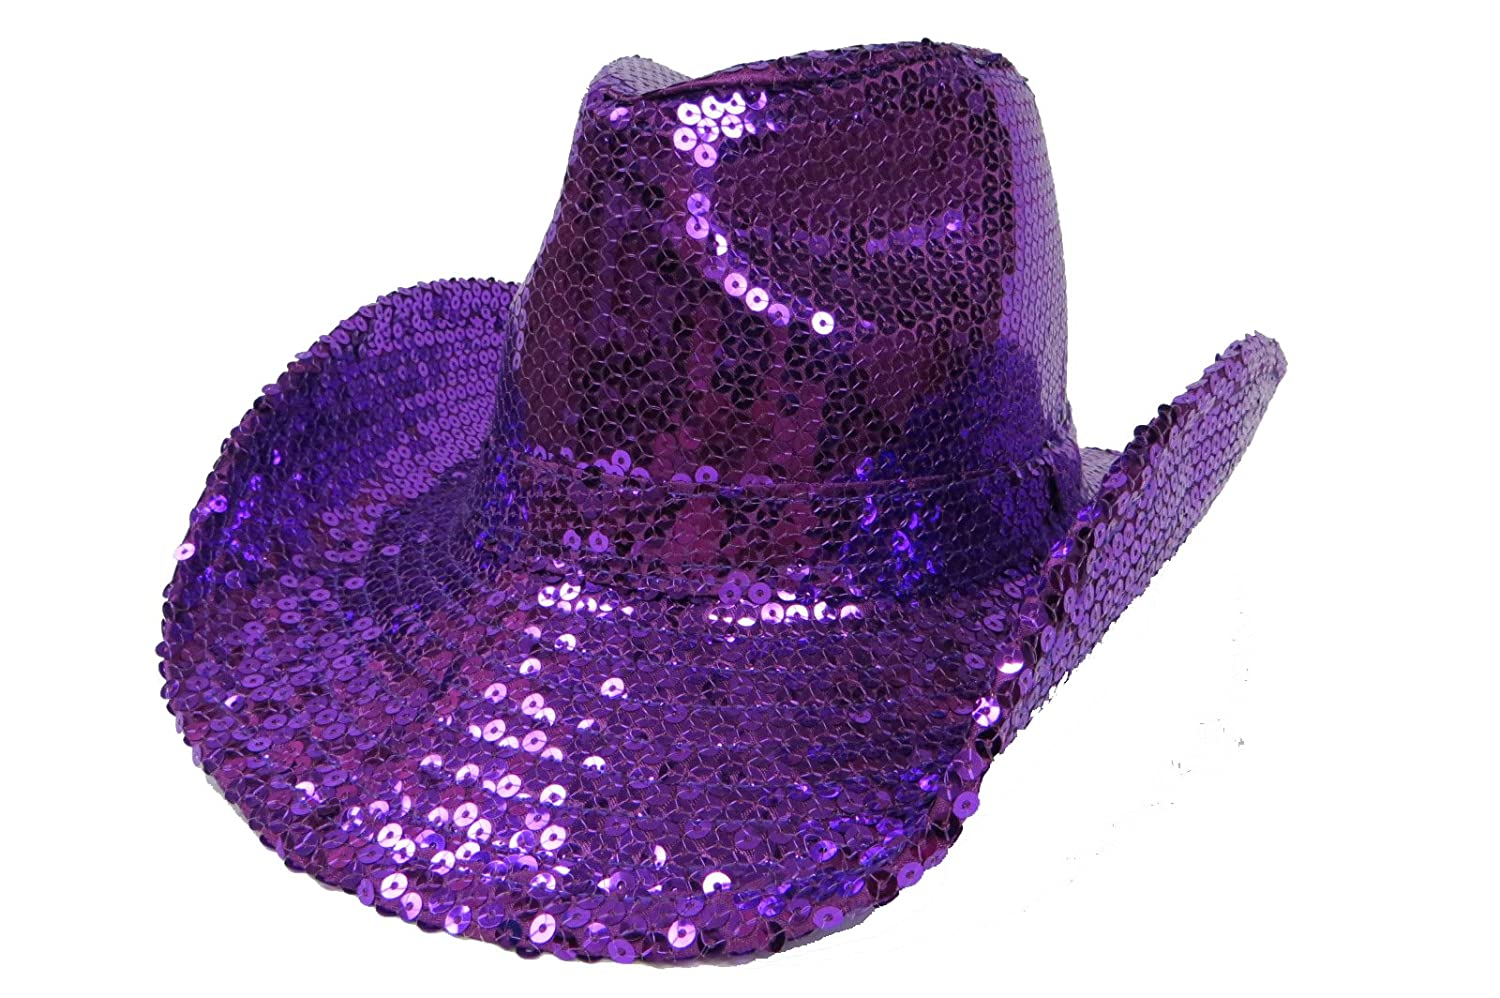 Sequin Covered Western   Purple   Red Hat Lady Society at Amazon Women s  Clothing store  Cowboy Hats 5e1ba700a920